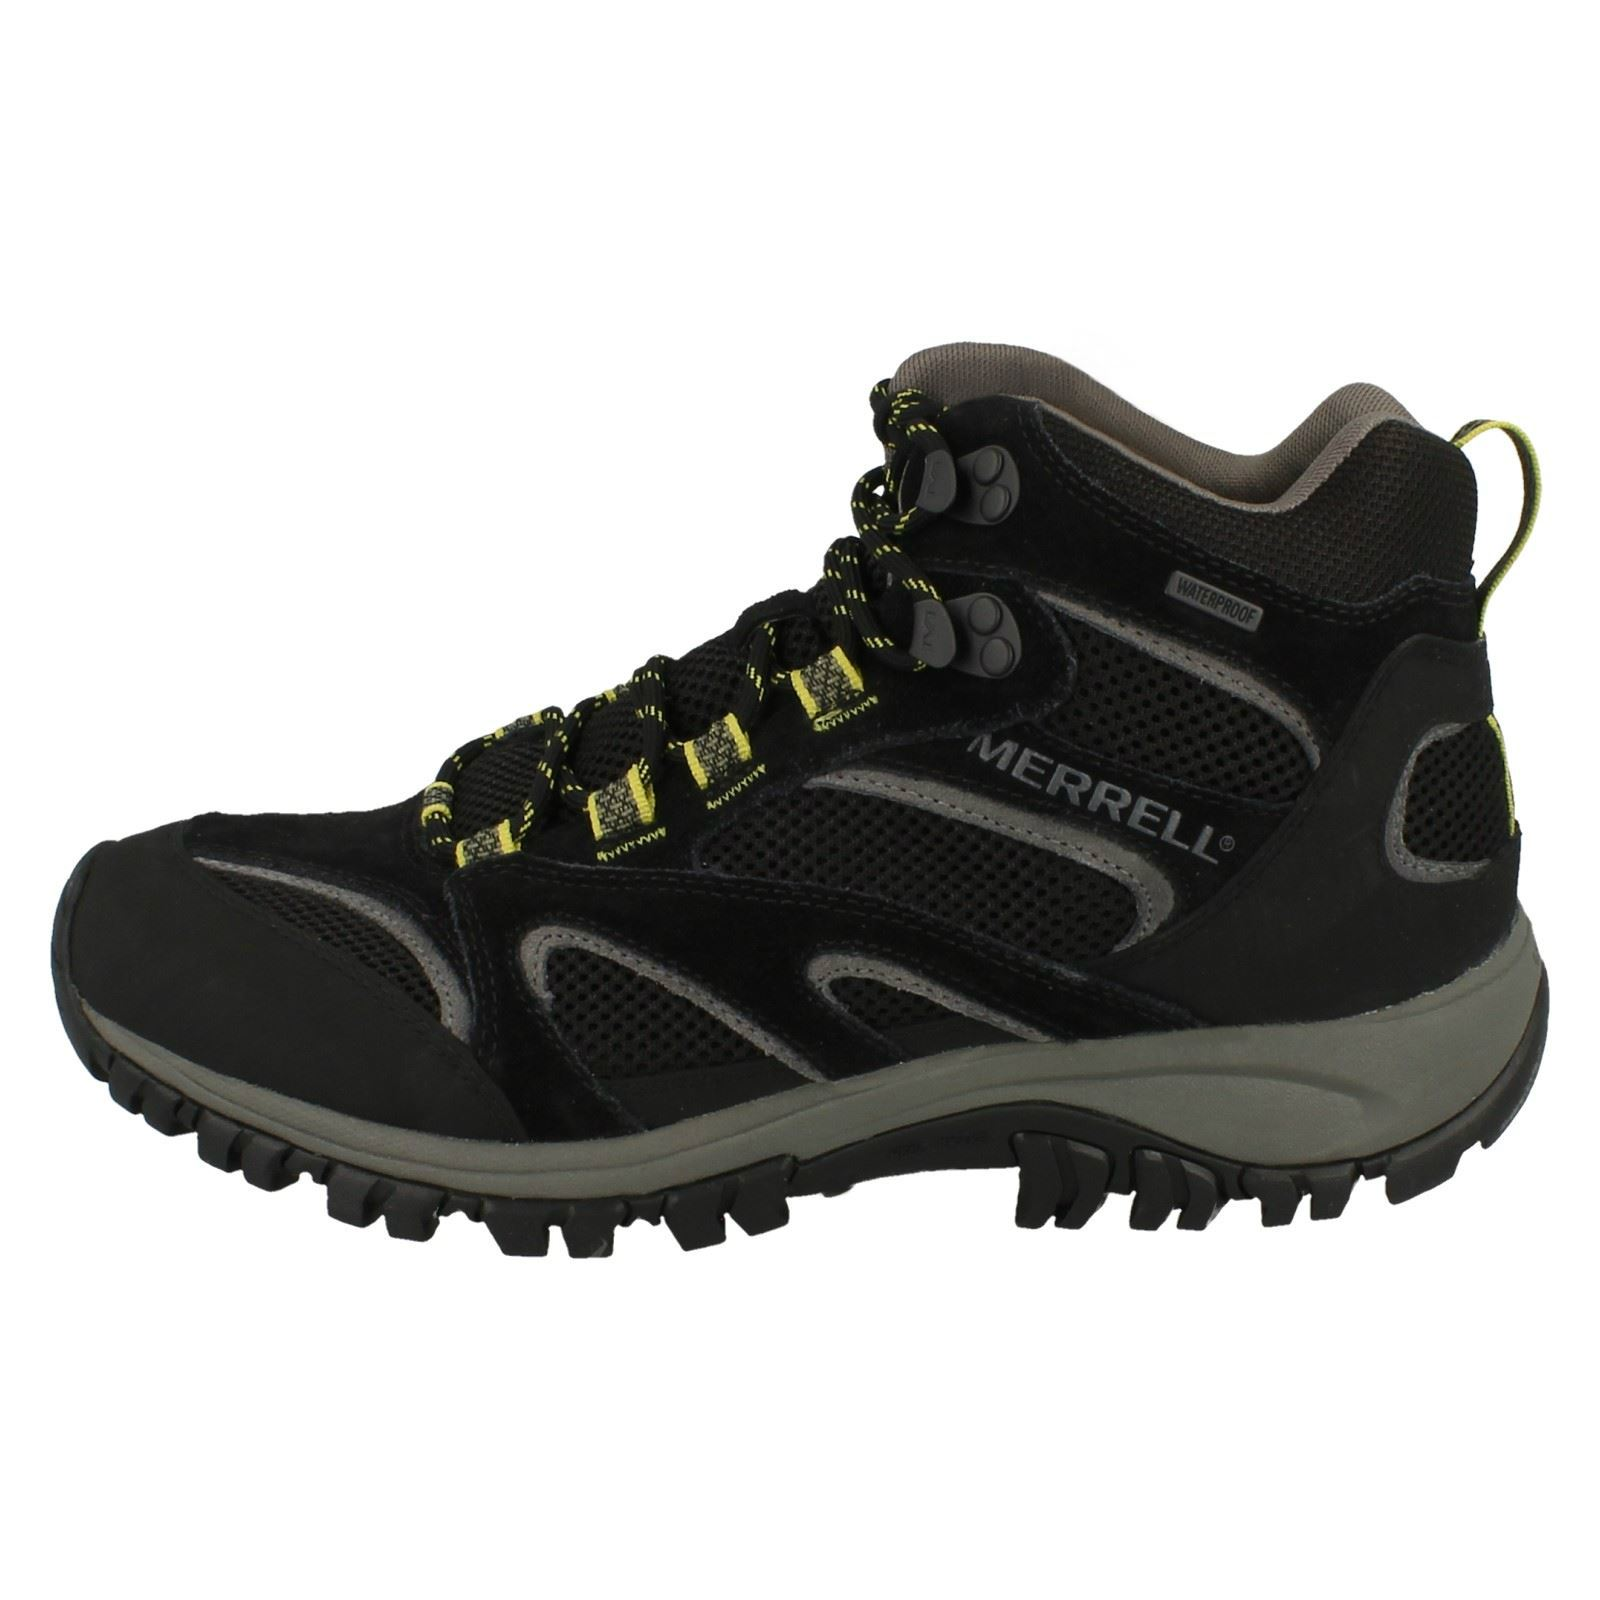 thumbnail 8 - Mens-Merrell-Waterproof-Walking-Boots-039-Phoenix-Mid-039